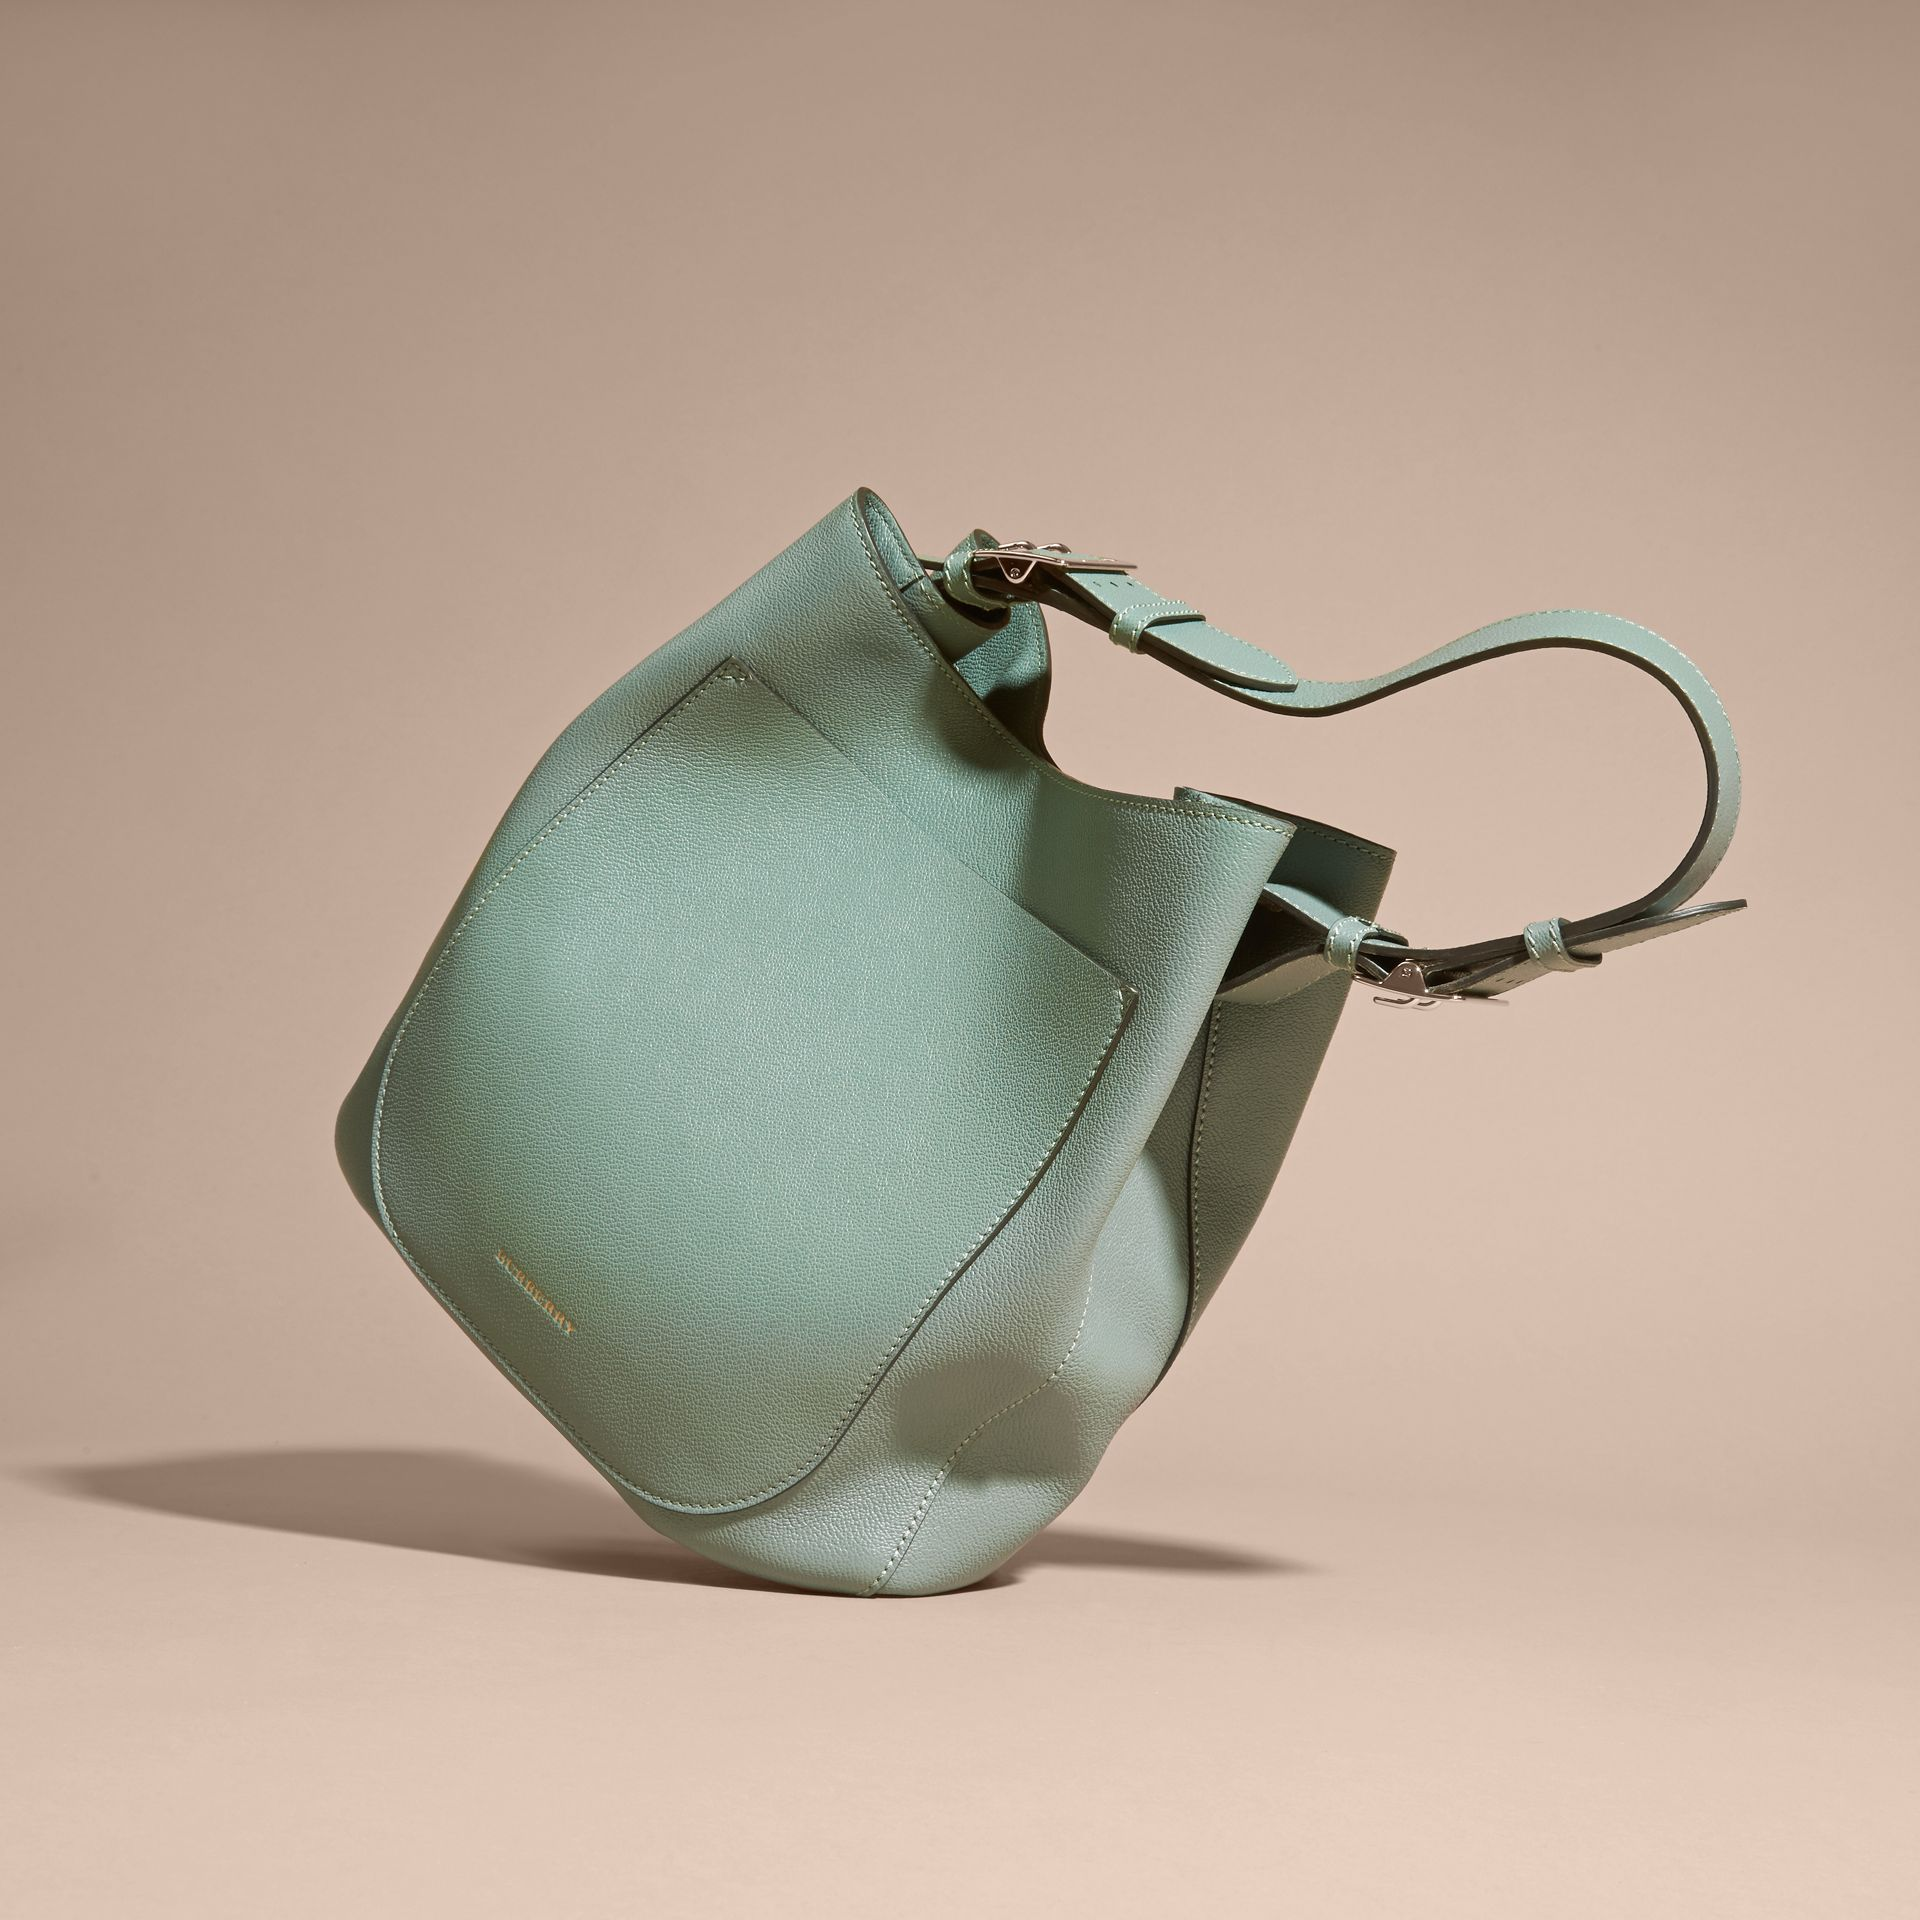 Textured Leather Shoulder Bag Eucalyptus Green - gallery image 7